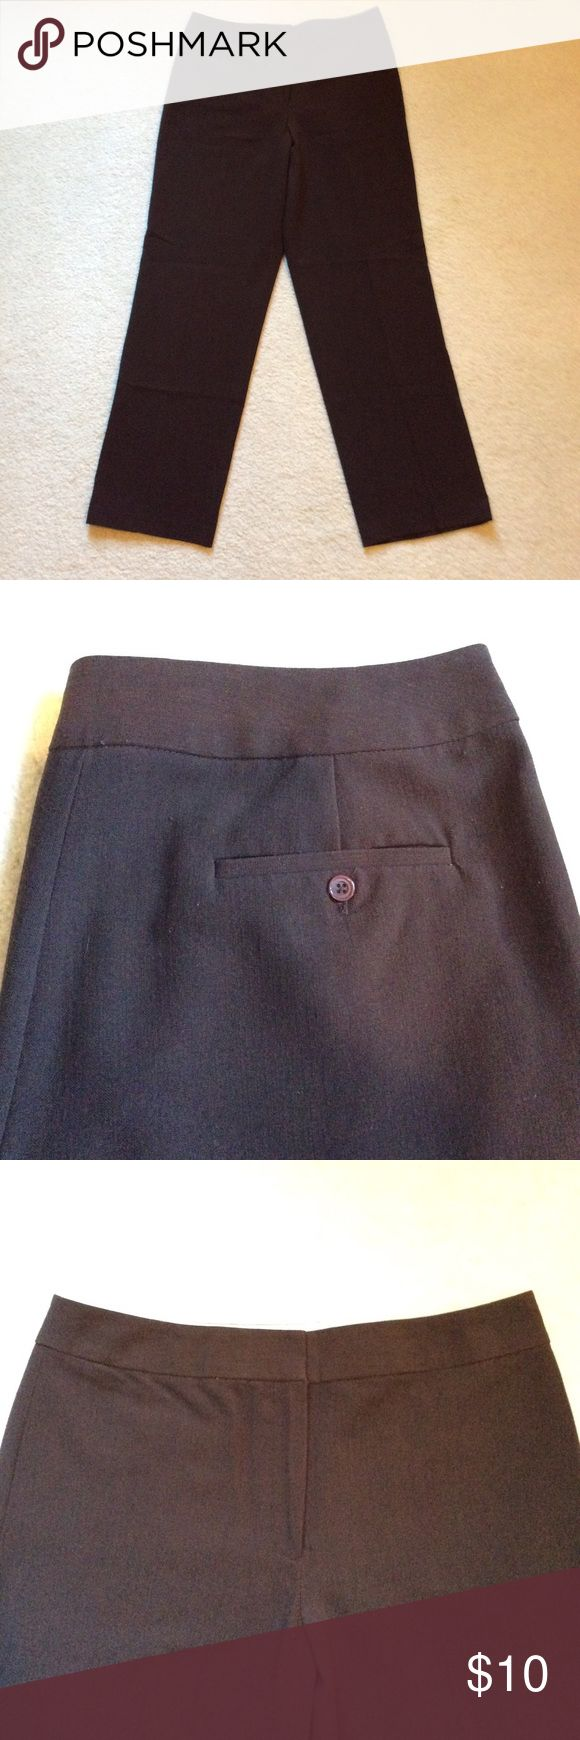 Chocolate brown trousers Flat front, zip front, no belt loops, no front pockets, pockets in back. Gently worn. Rafaella Pants Trousers